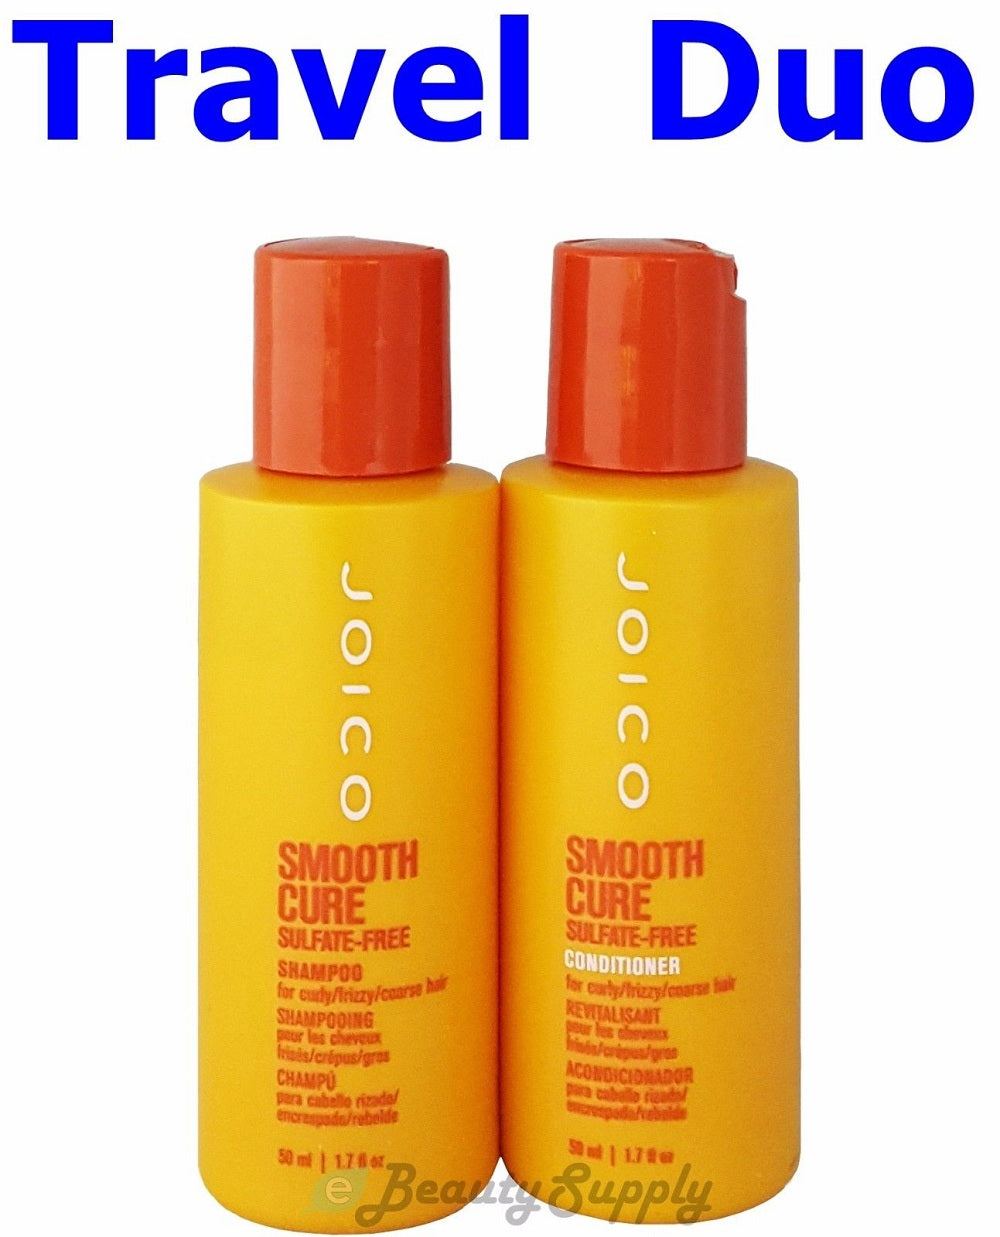 Joico Smooth Cure Sulfate Free Shampoo Conditioner Travel Duo Each 1 7 oz